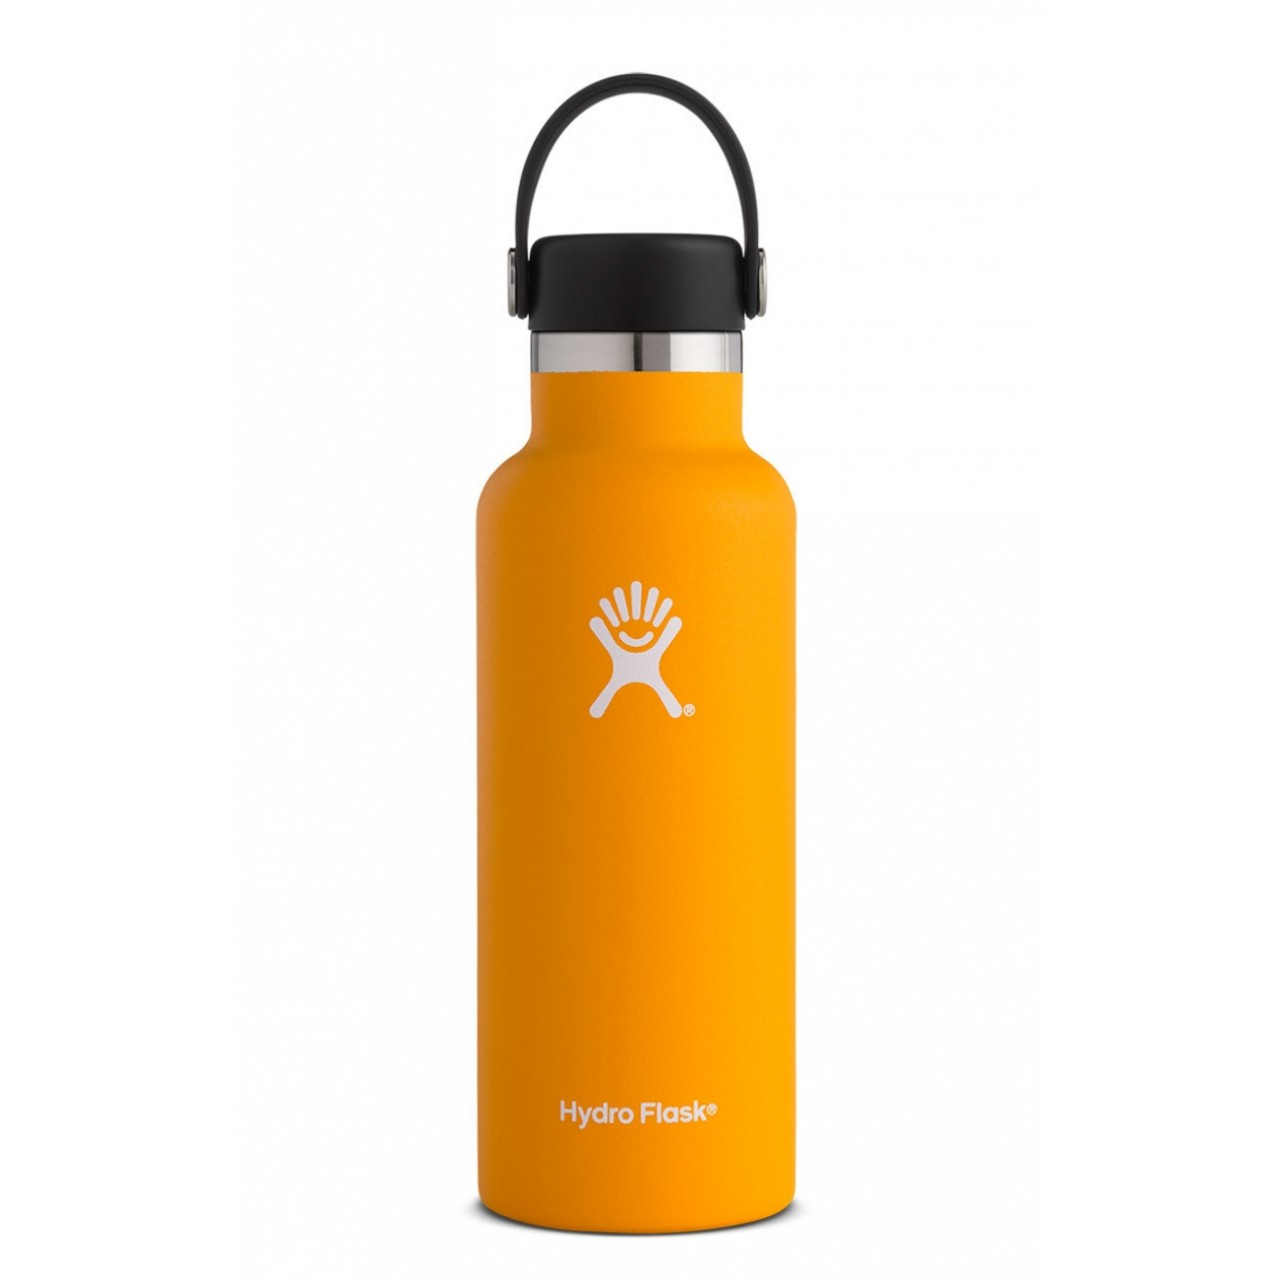 Outdoor Küche Plum Hydro Flask - Insulated Water Bottle 18oz - Standard Mouth